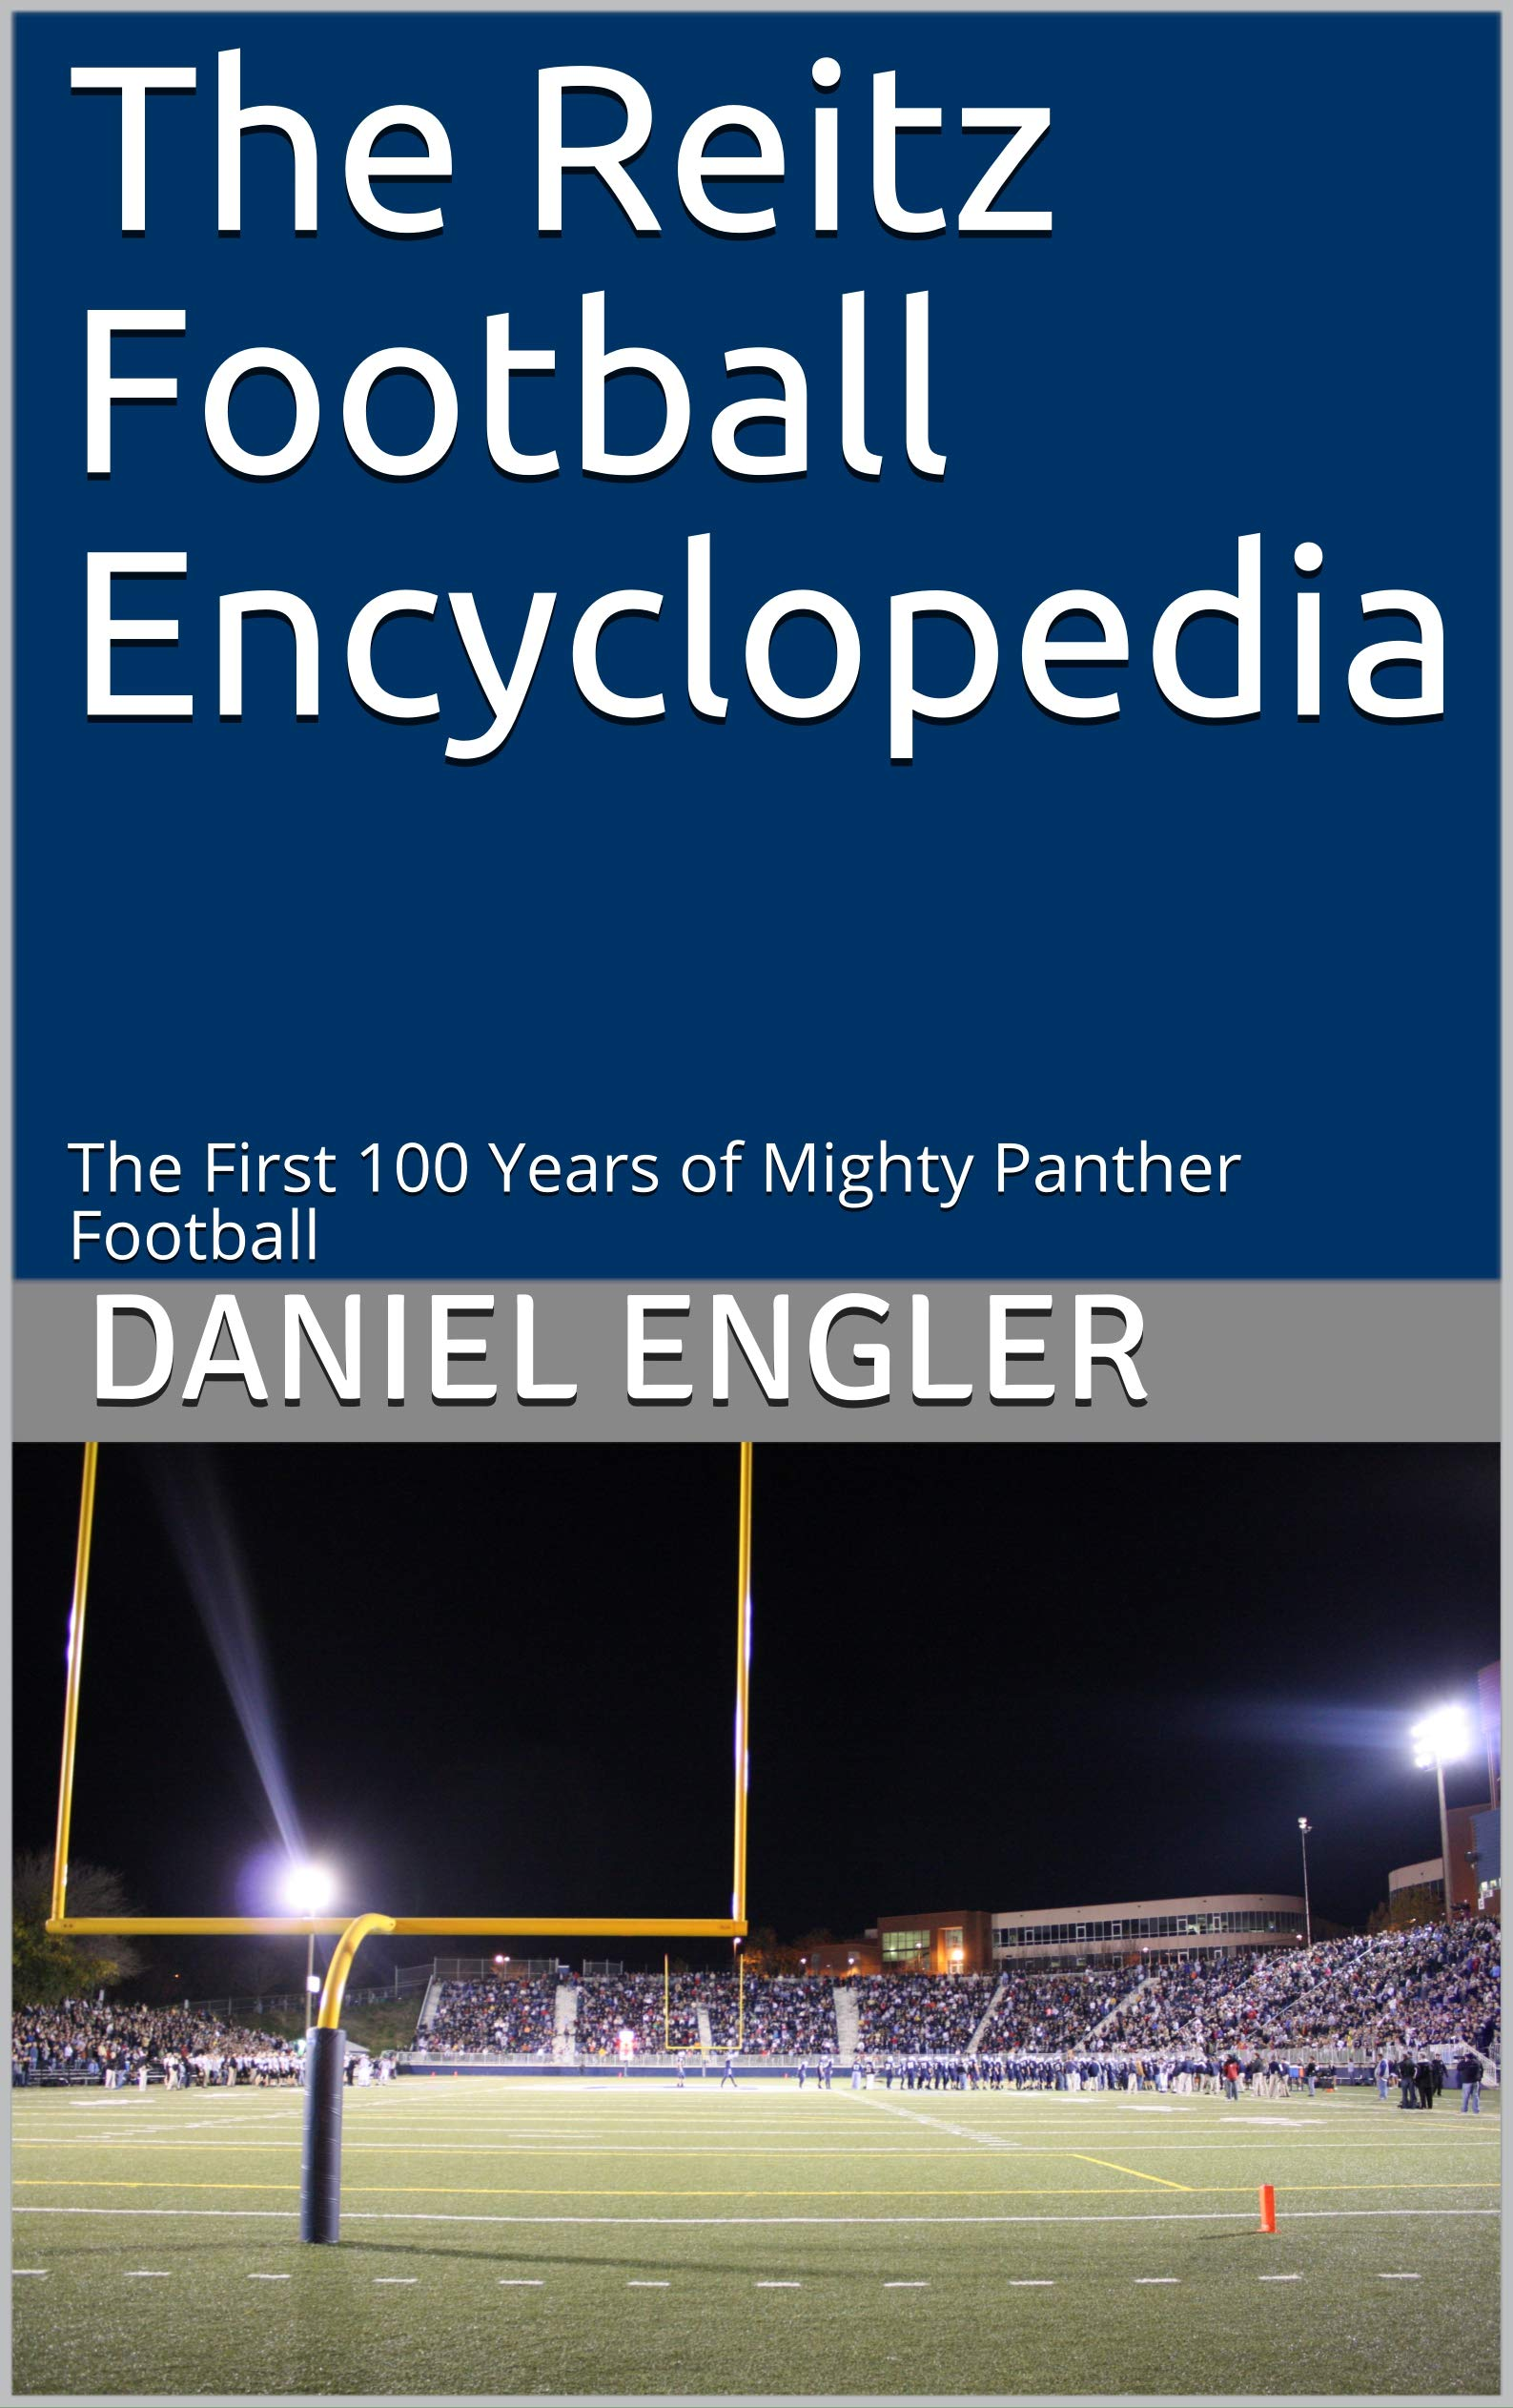 Image OfThe Reitz Football Encyclopedia: The First 100 Years Of Mighty Panther Football (English Edition)